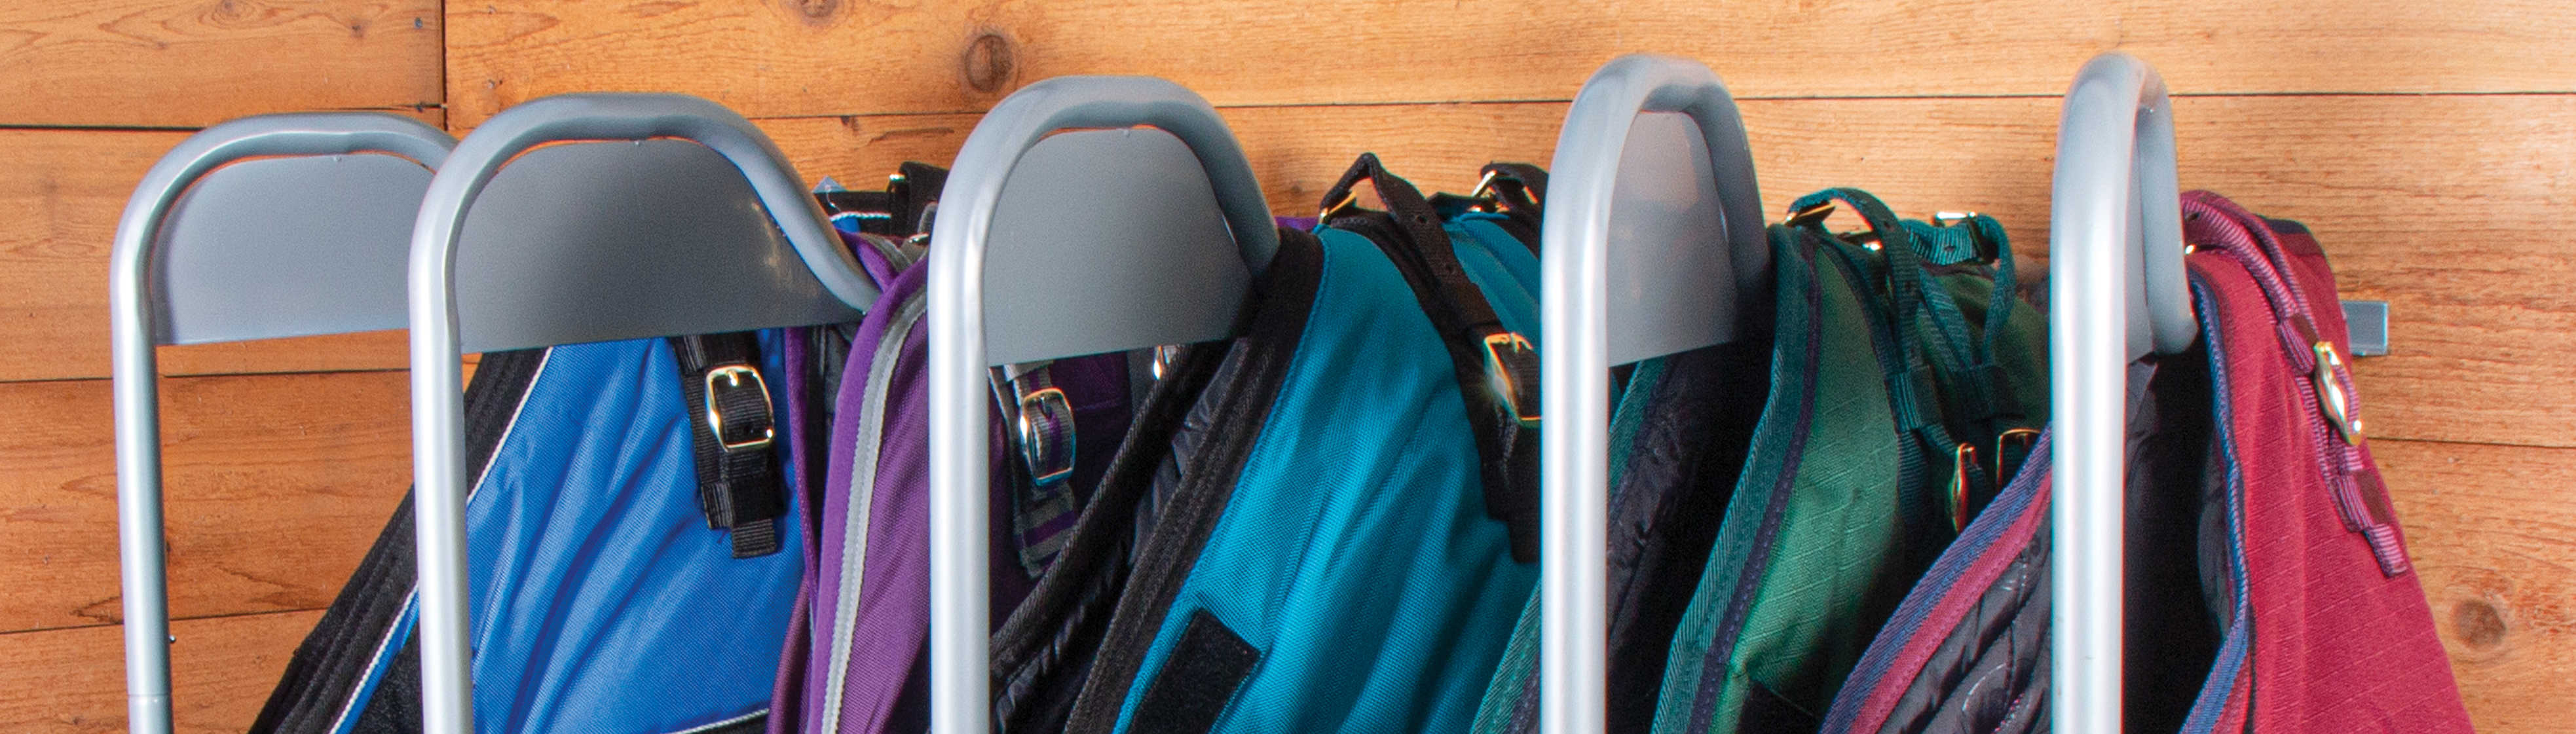 Life Hacks to Organizing and Cleaning Up Your Tack Room